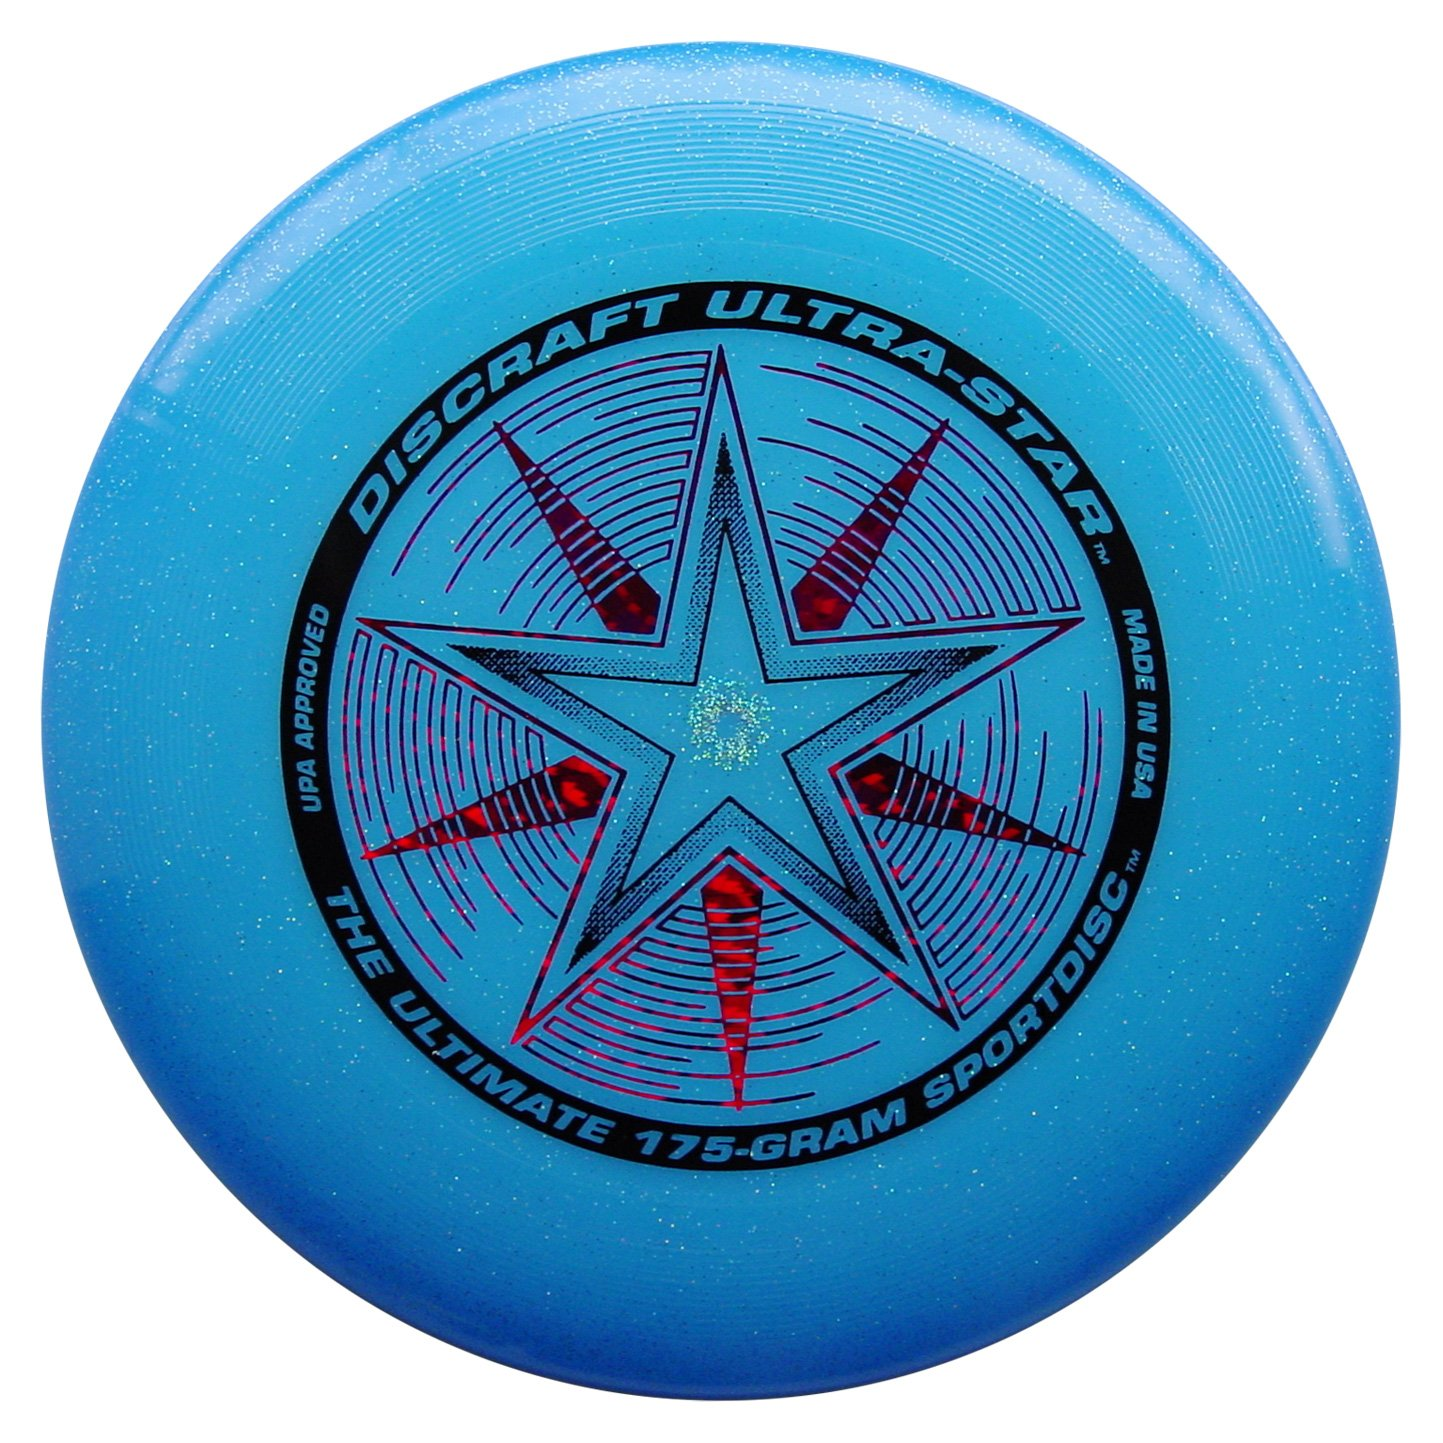 Discraft 175 gram Ultra Star Sport Disc, Blue Sparkle with Deluxe Packaging by Discraft